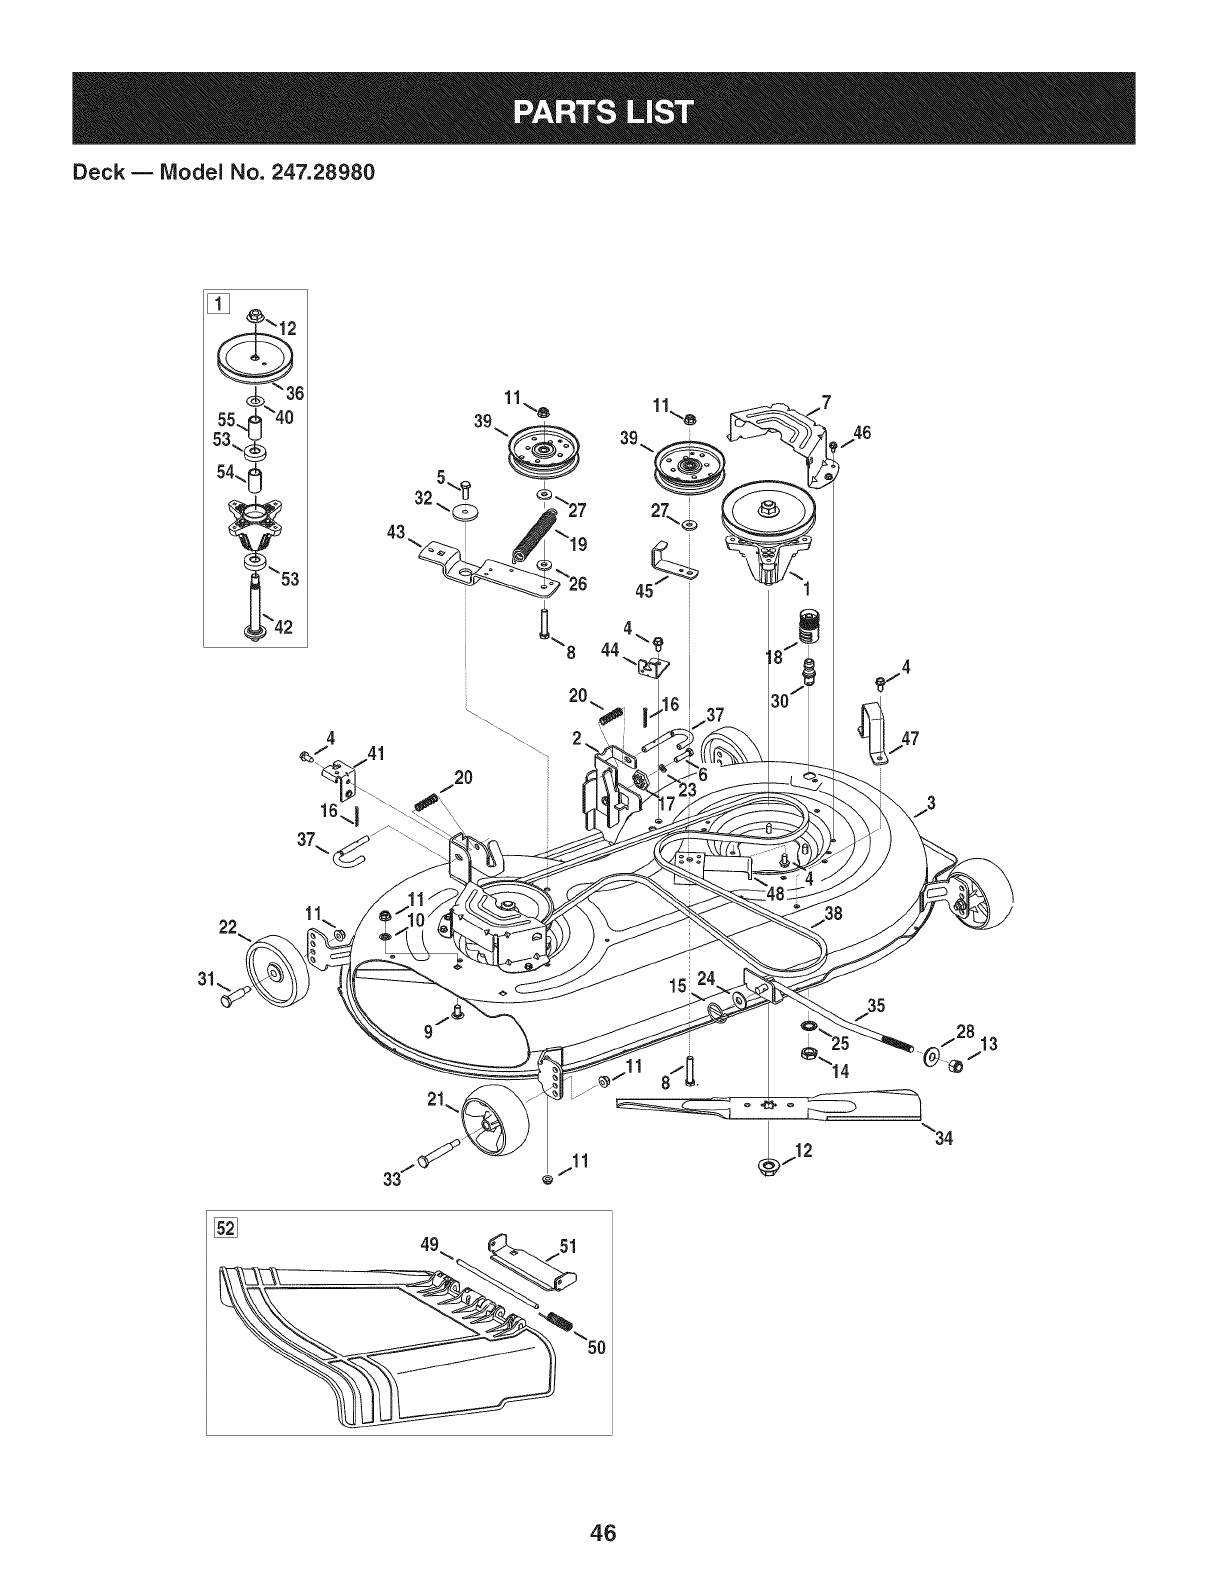 Page 46 of Craftsman Lawn Mower 247.28980 User Guide